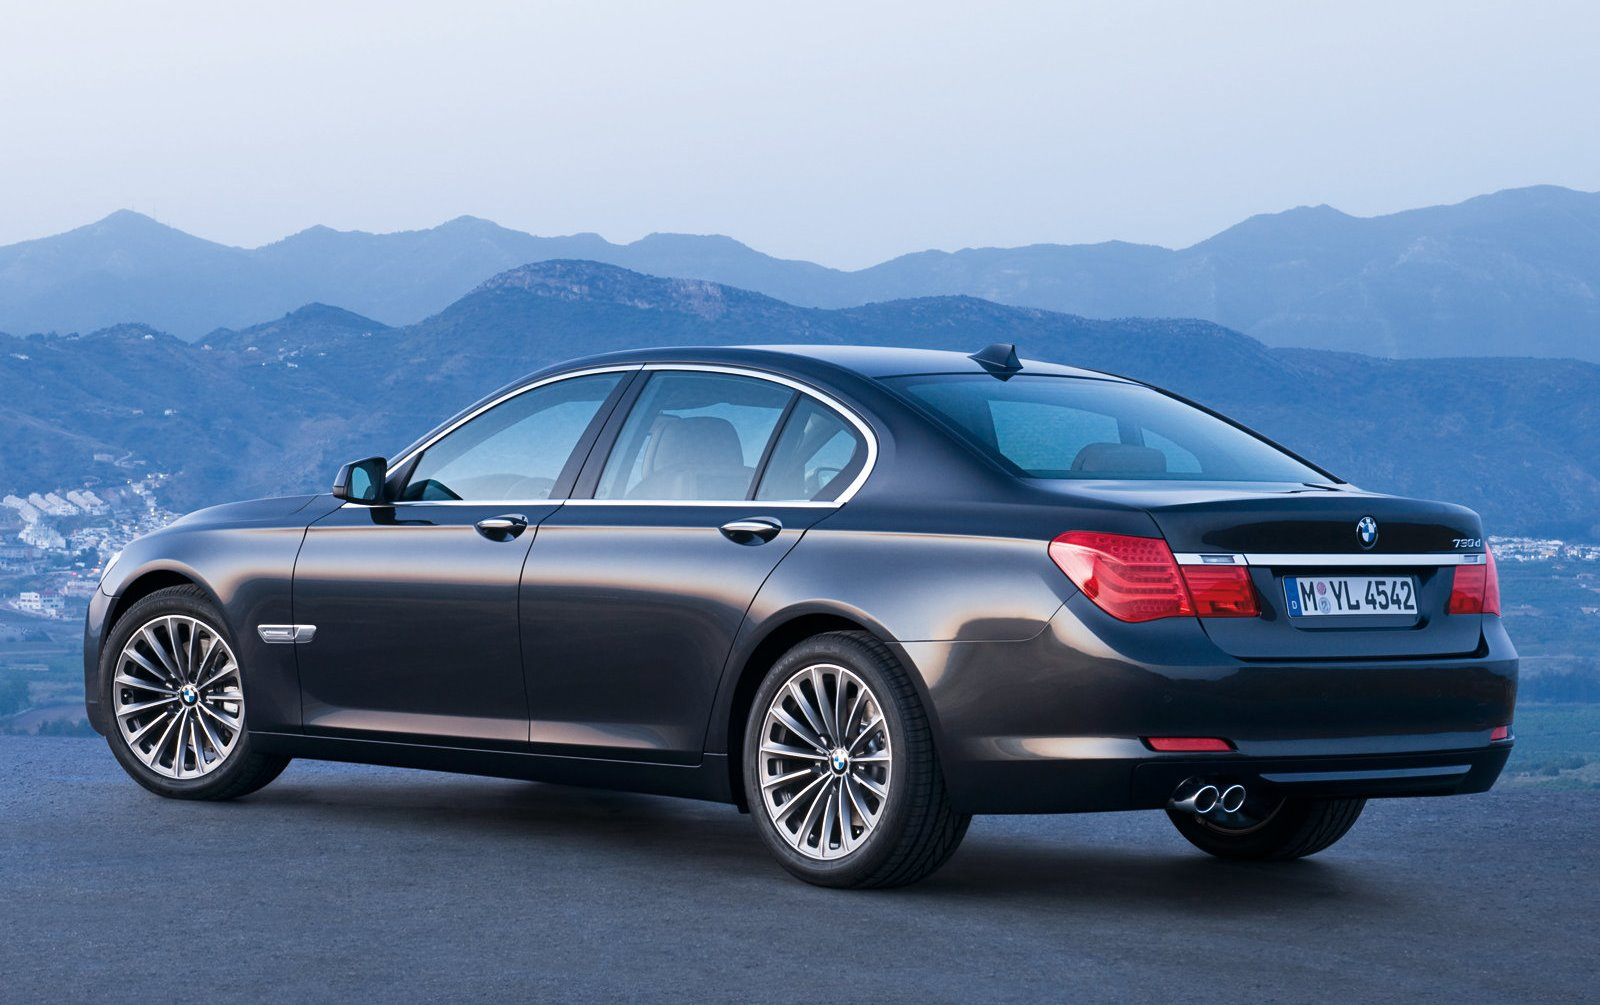 BMW 7 Series 2015 Exterior Rear Side View